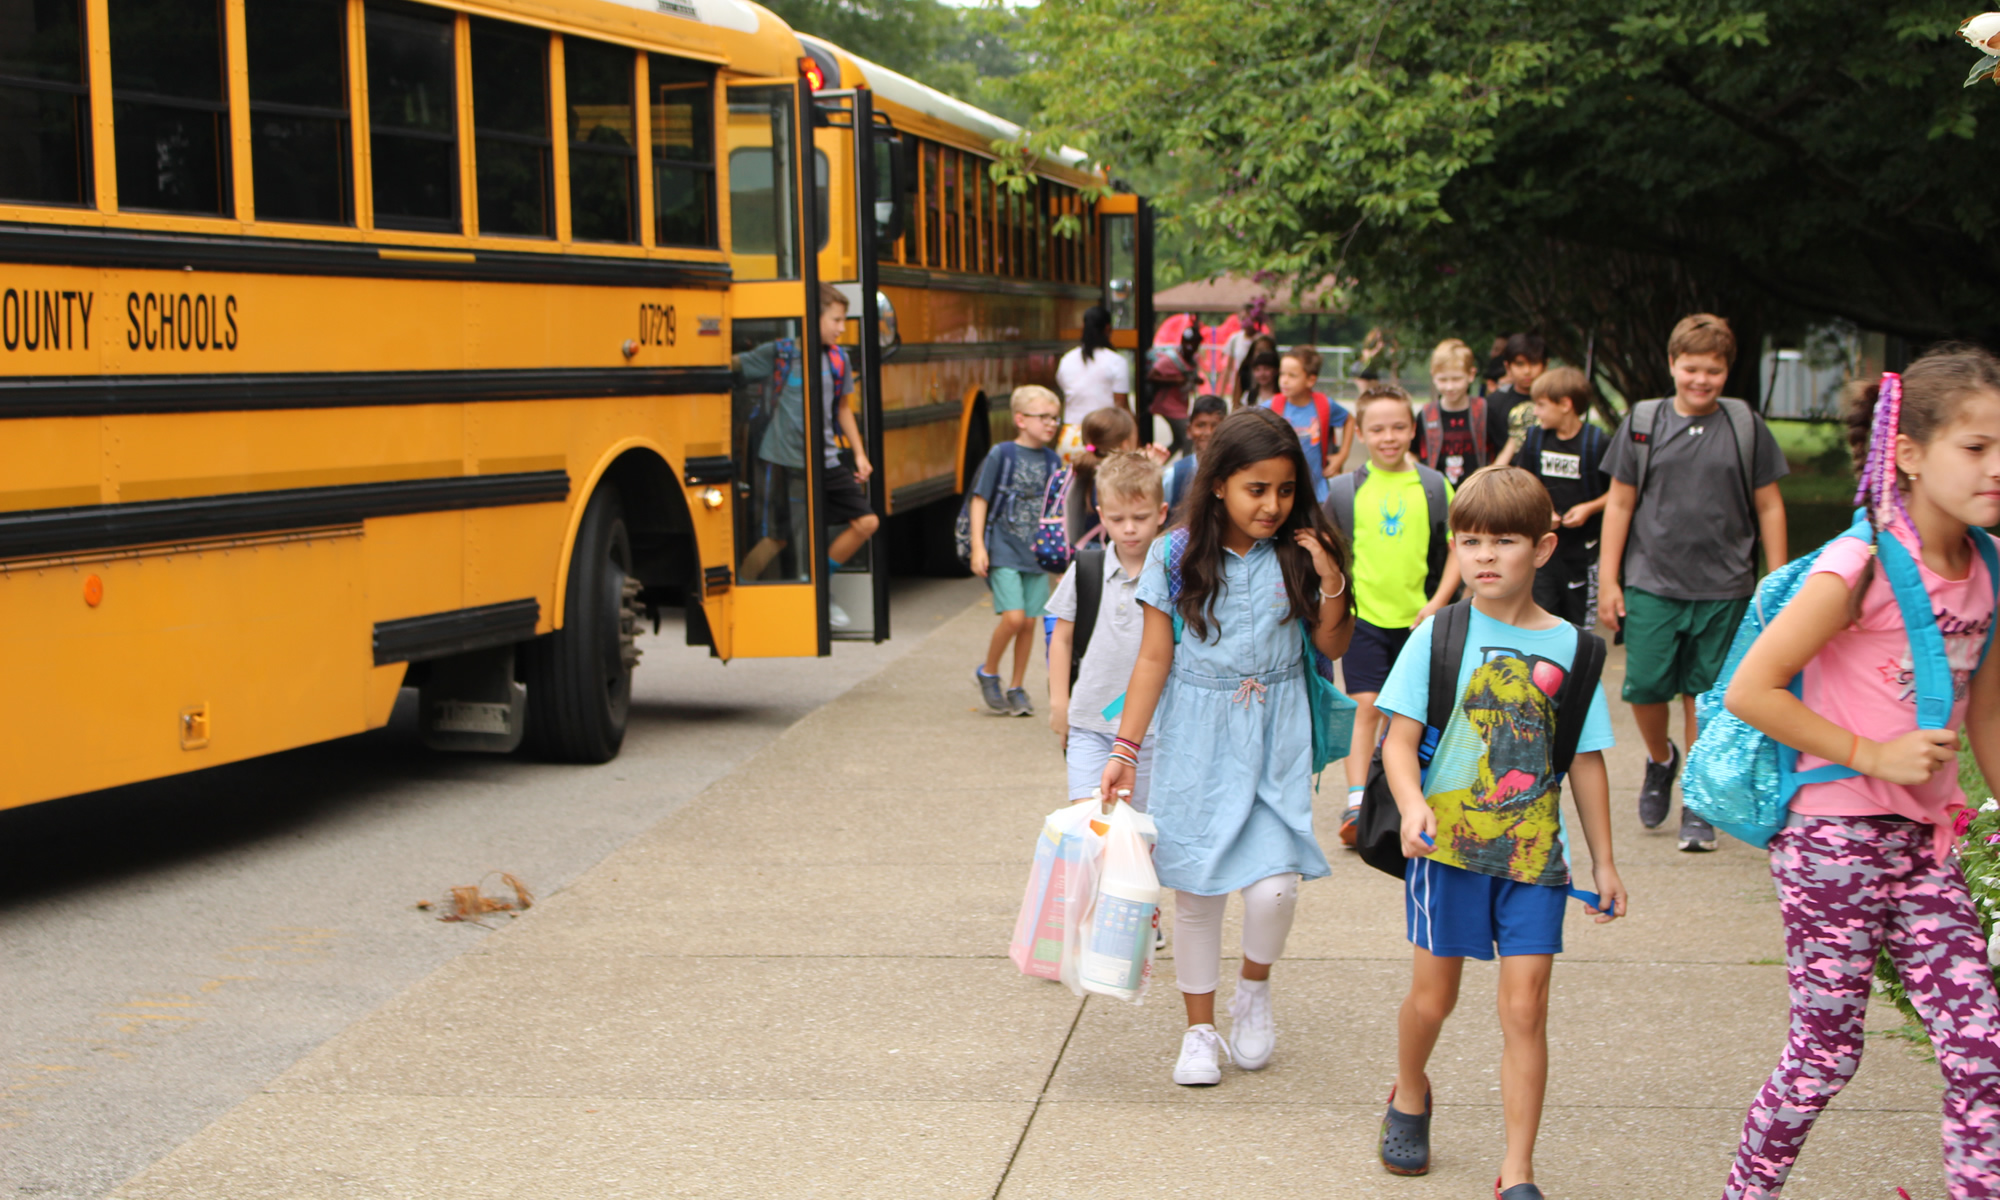 Keeping Students Safe on the School Bus